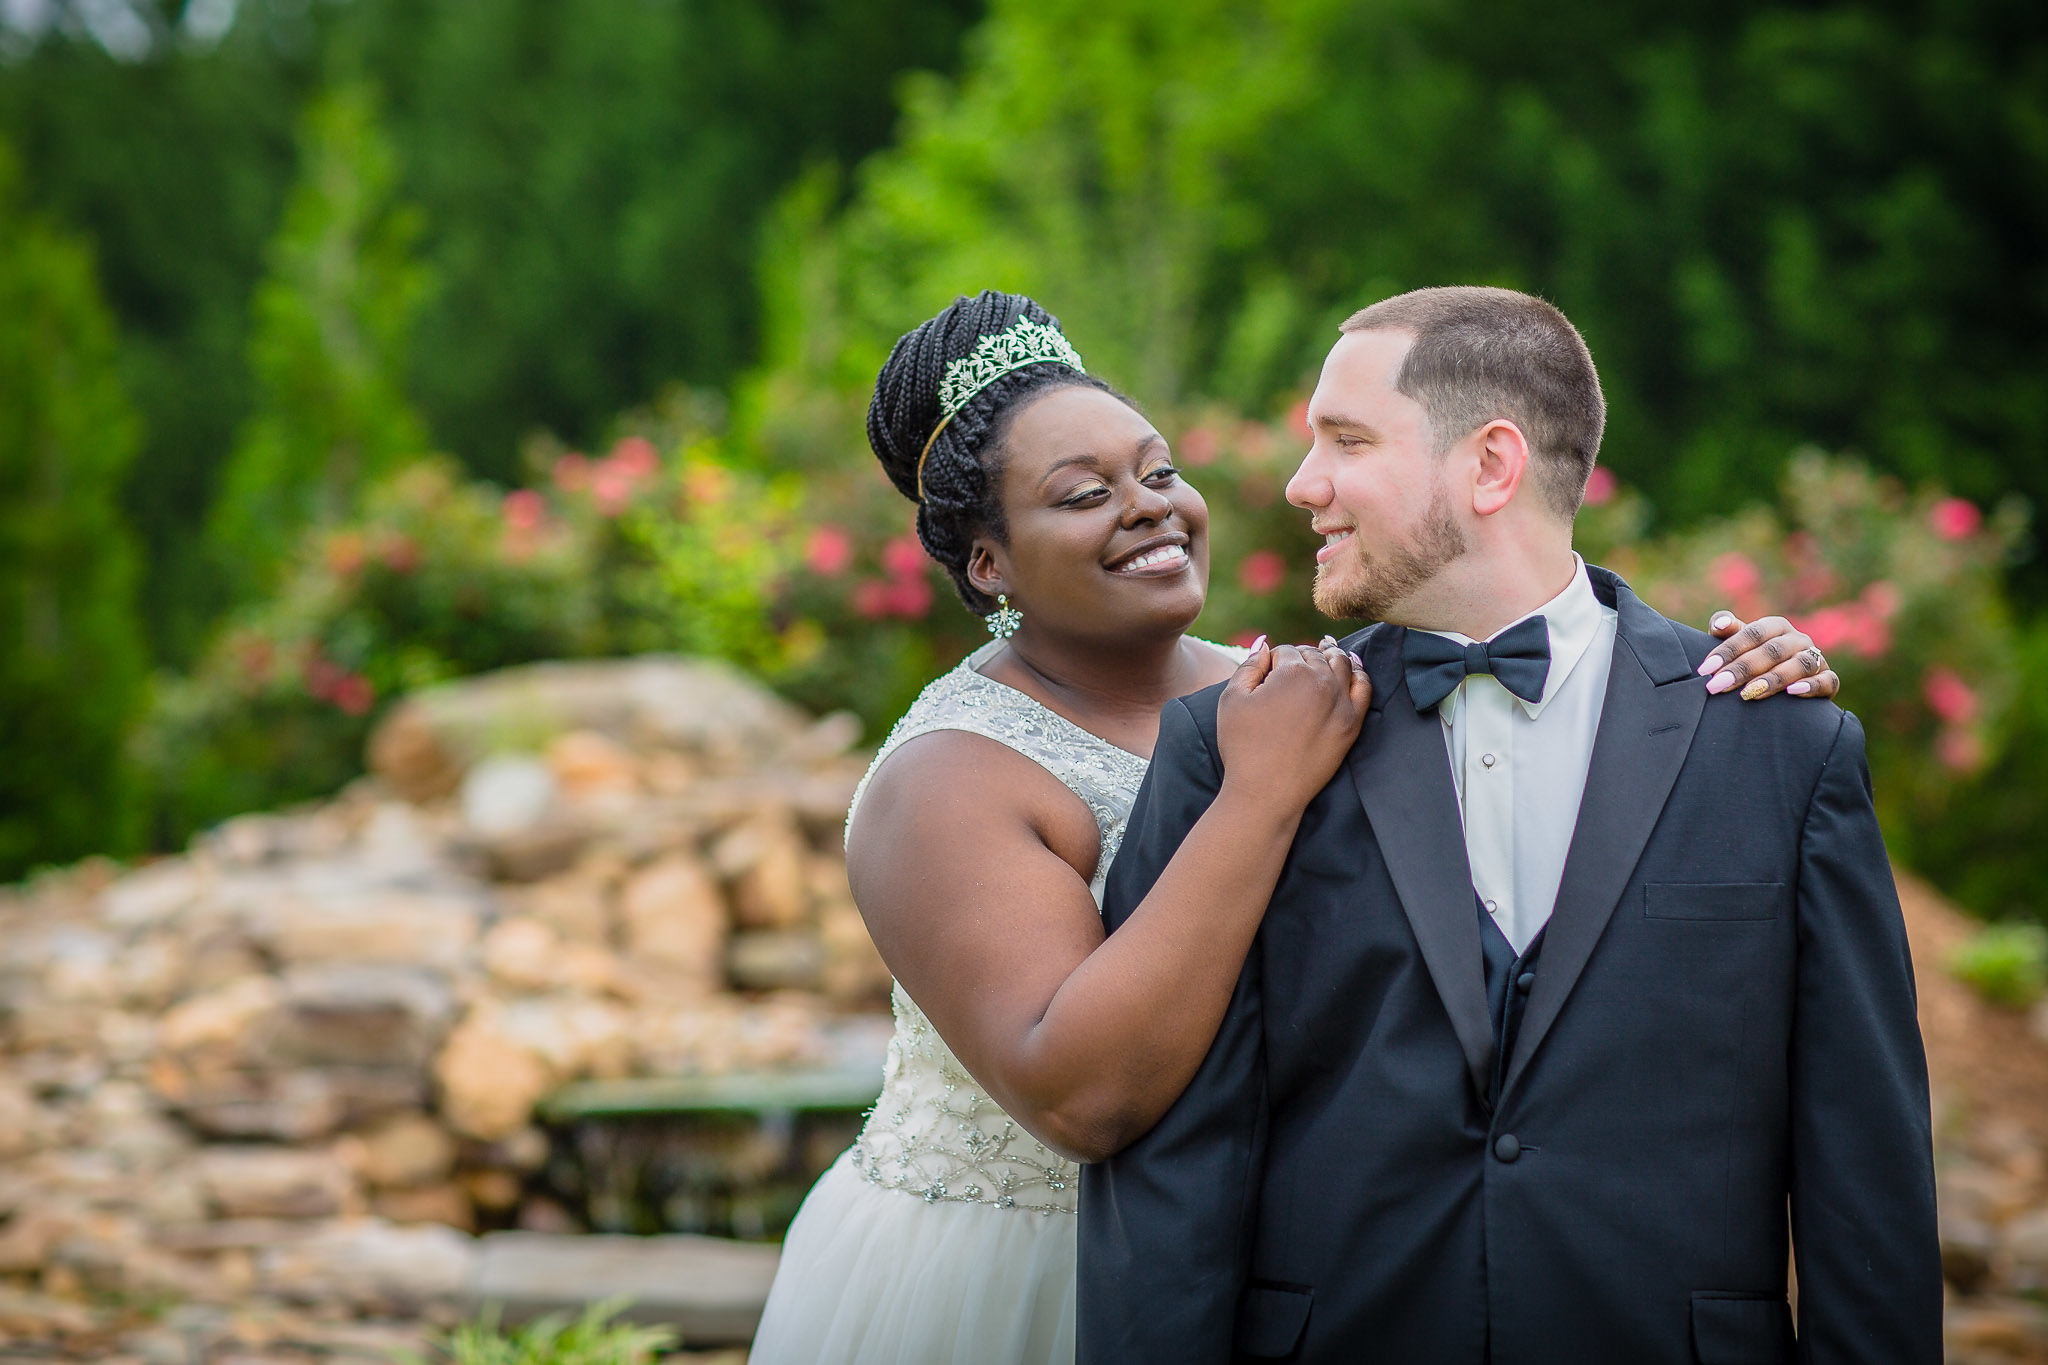 One of the best wedding photographers in Greenville SC portrait of a bride and groom